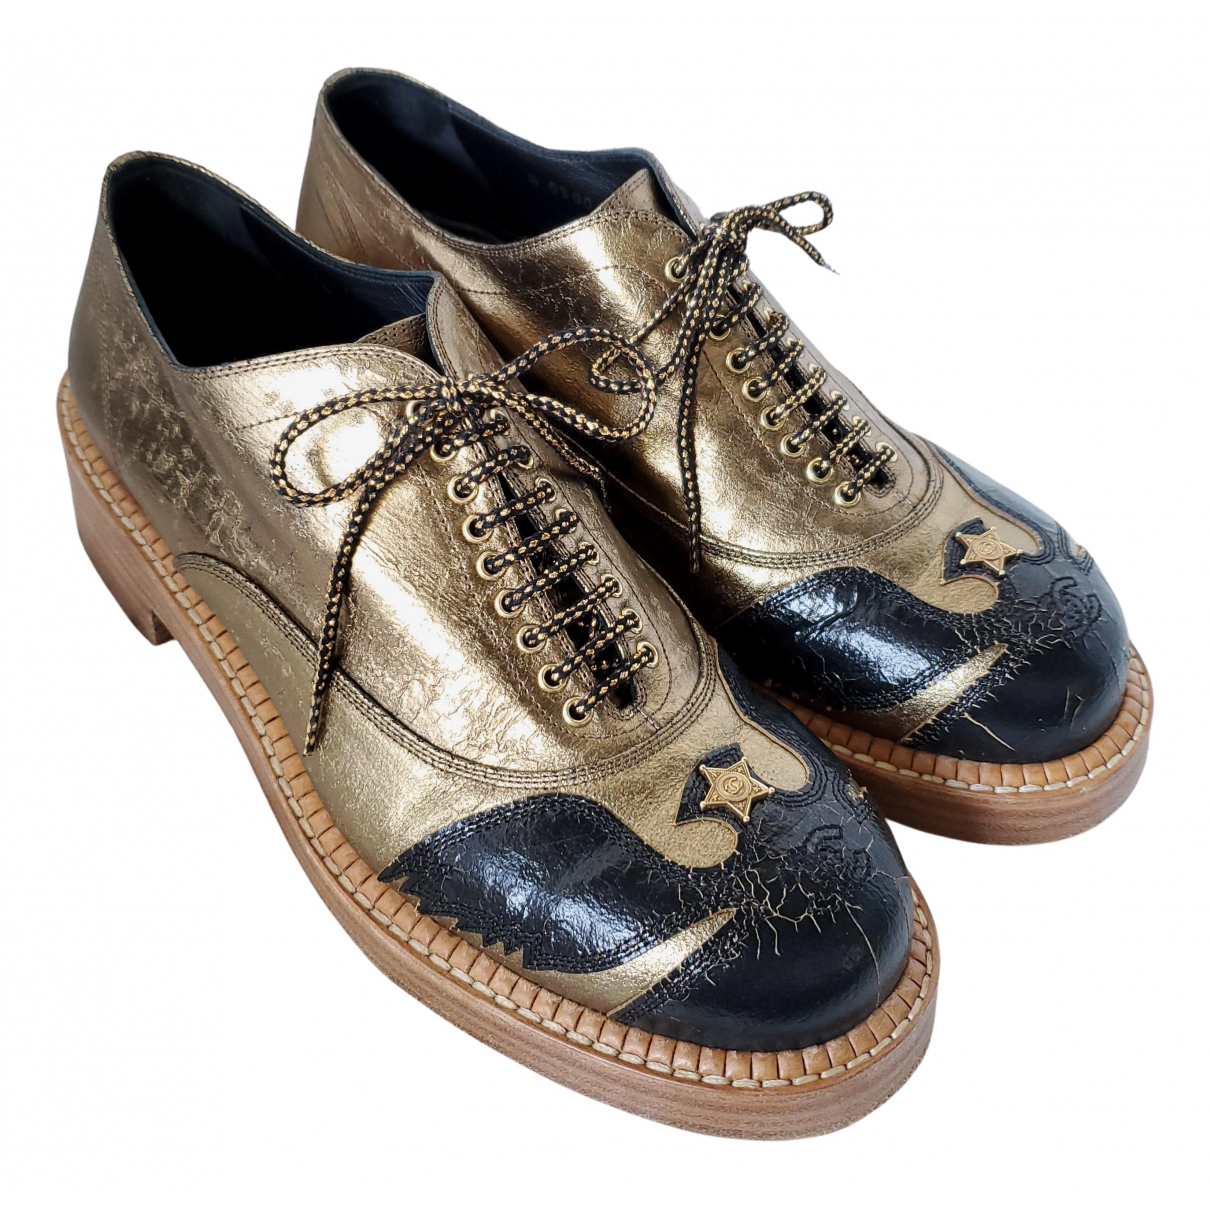 Chanel N Gold Leather Lace ups for Women 38.5 EU